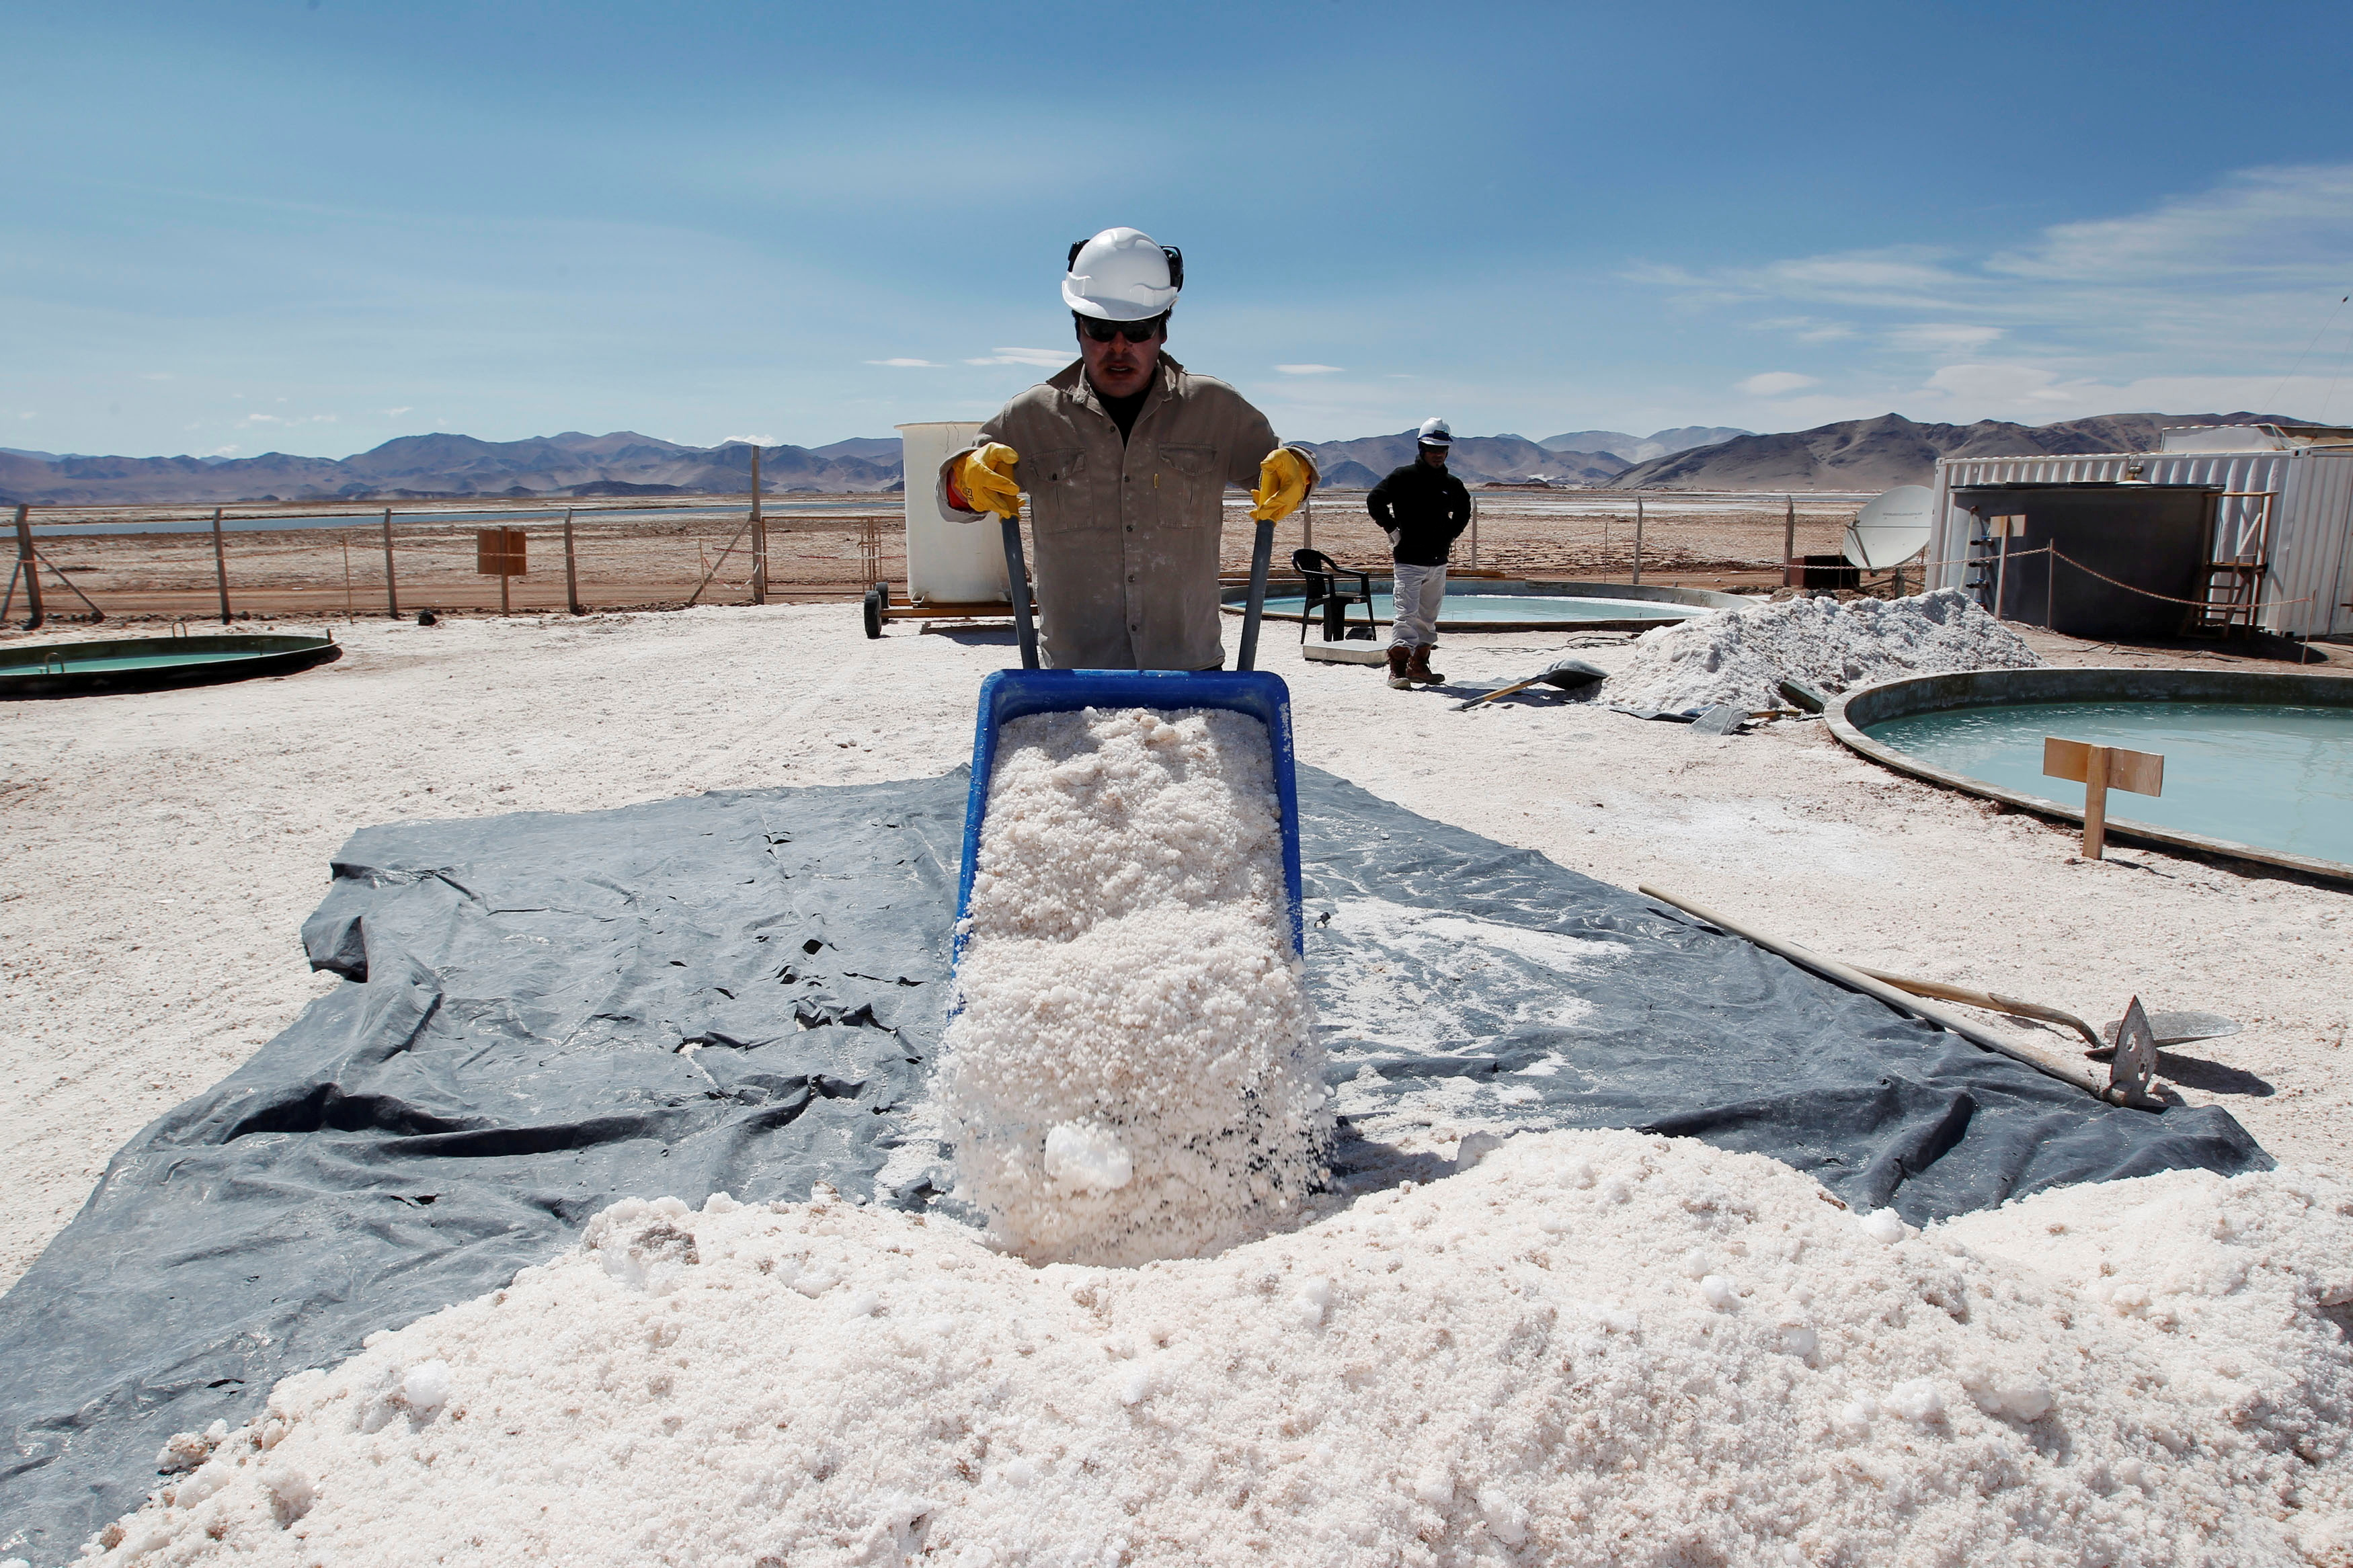 Braulio Lopez of Galaxy Resources lithium mining division carts halite concentrate at the Salar del Hombre Muerto, or Dead Man's Salt Flat, an important source of lithium at around 4,000 meters (13,123 feet) above sea level on the border of the northern Argentine provinces of Catamarca and Salta, October 28, 2012. REUTERS/Enrique Marcarian/File Photo/File Photo